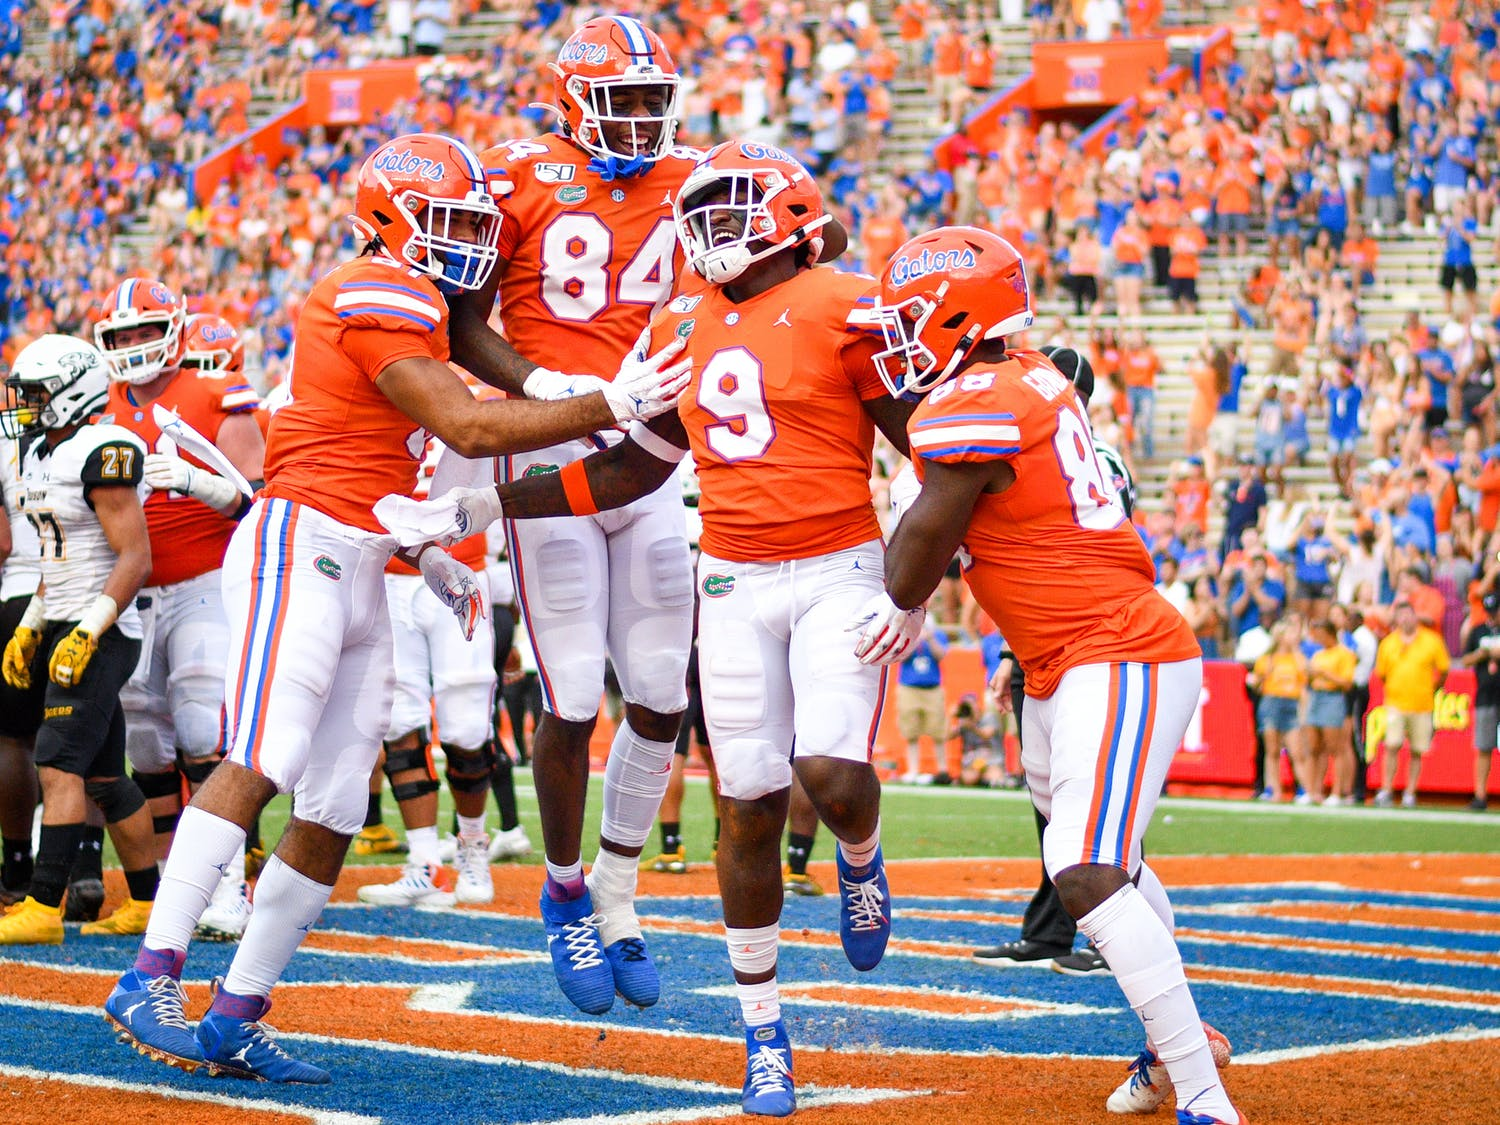 """This week's episode of the HBO show """"24/7 College Football"""" follows the Gators as the prepare to play the Towson Tigers."""